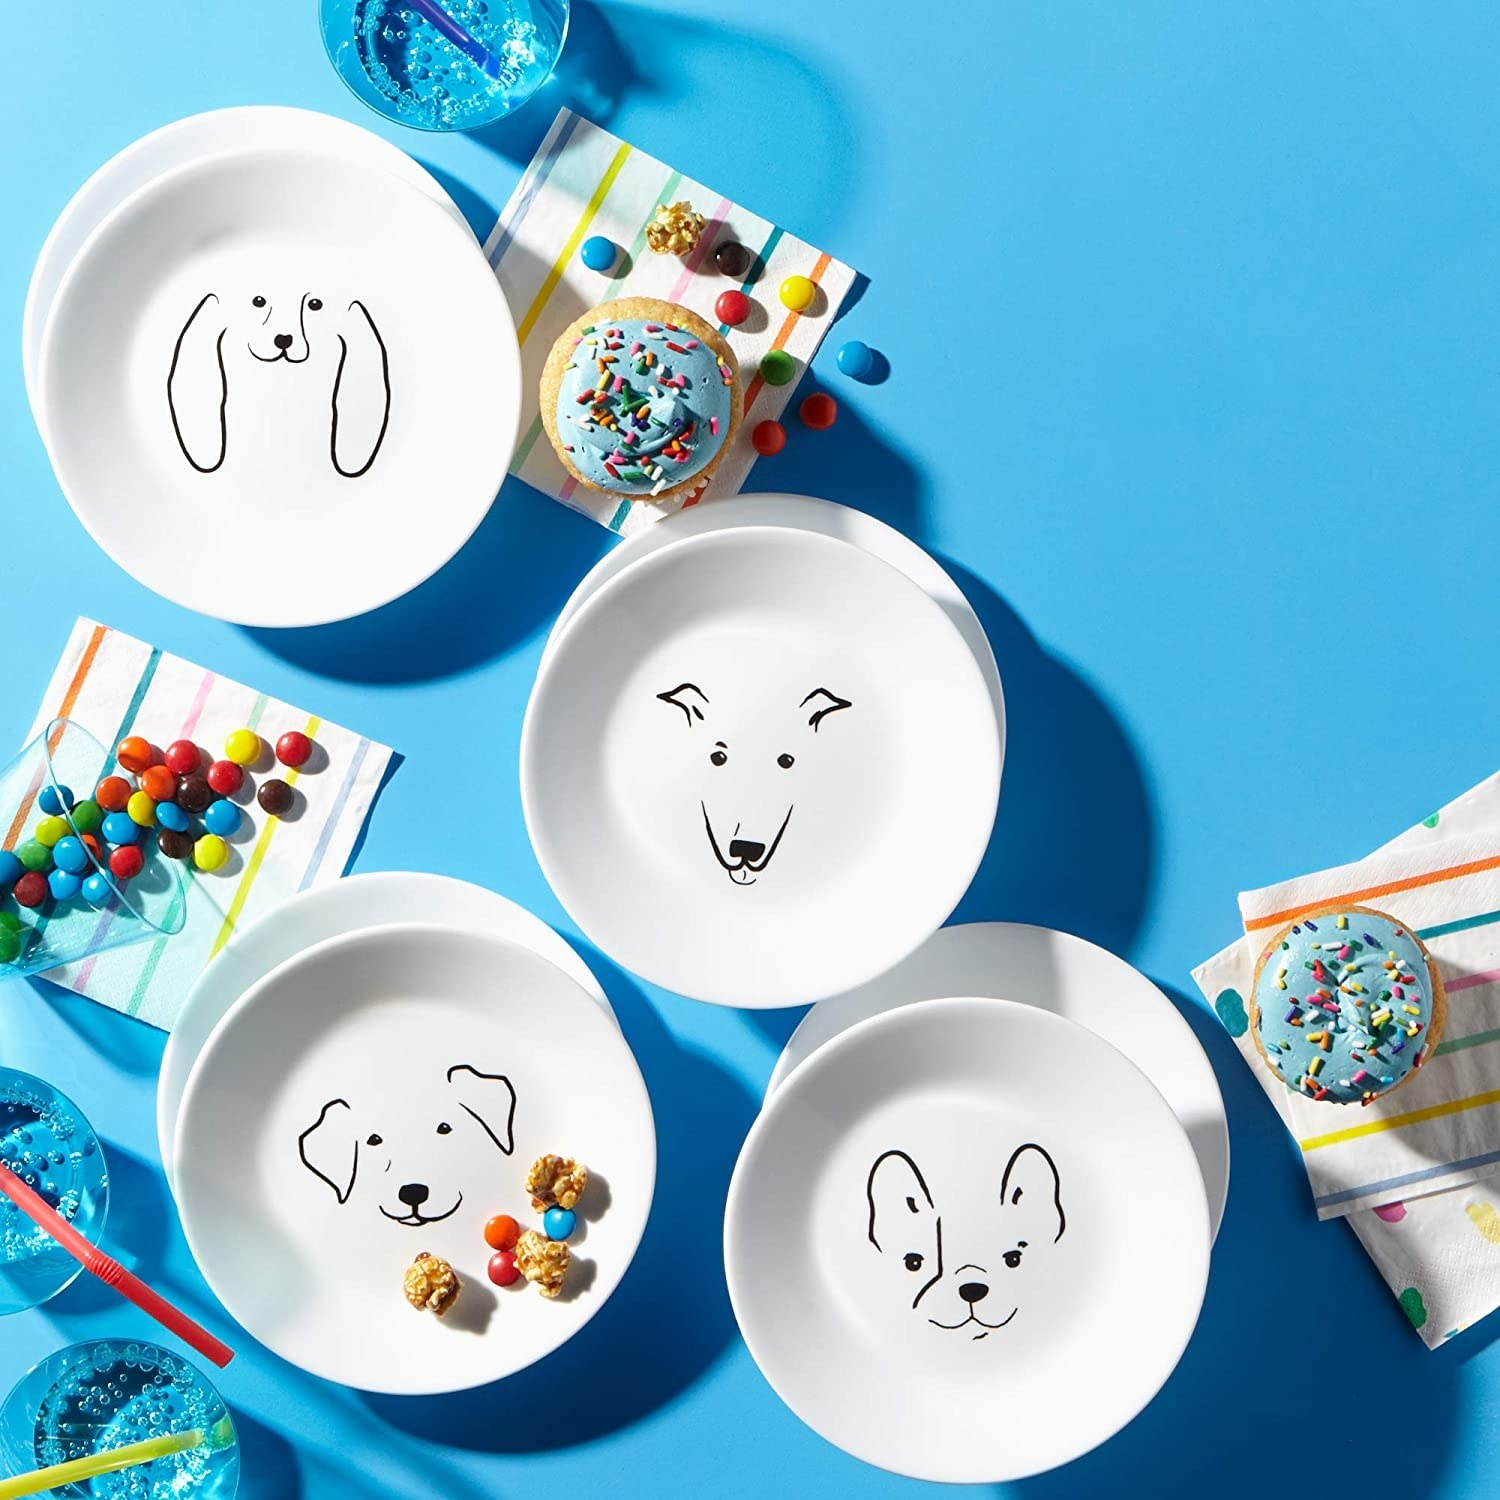 four white plates with the outline of different dog faces on them in black sitting on top a bright blue dessert table